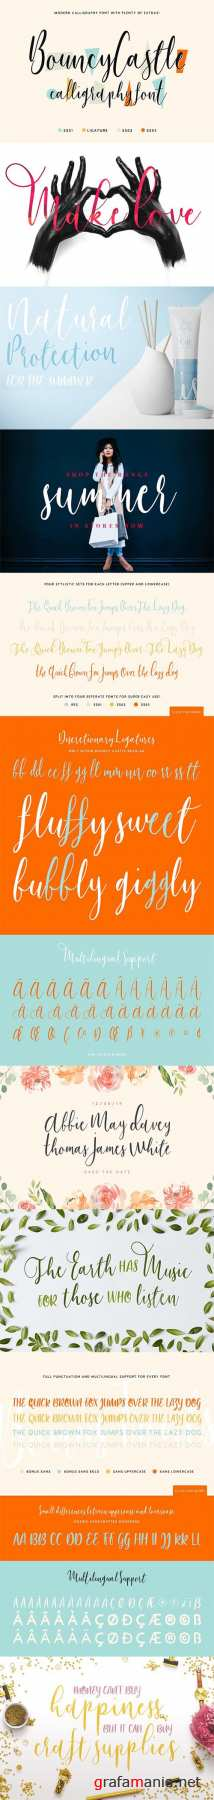 Bouncy Castle Calligraphy Font 1600085